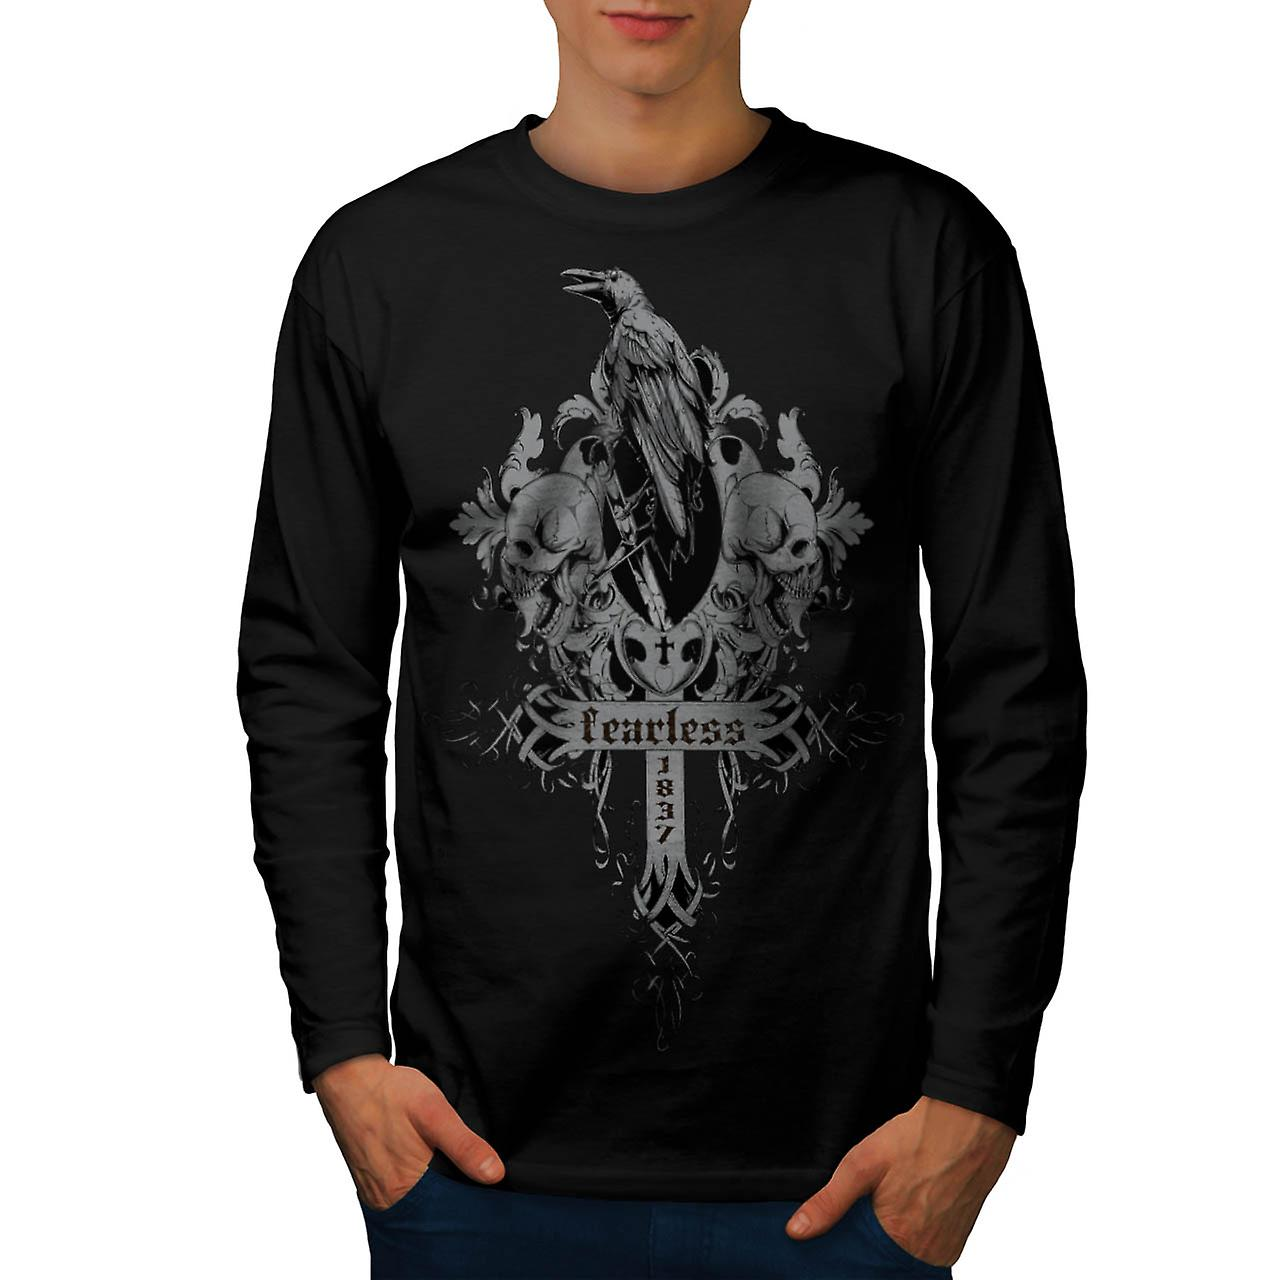 Fearless Death Crow Men Black Long Sleeve T-shirt | Wellcoda